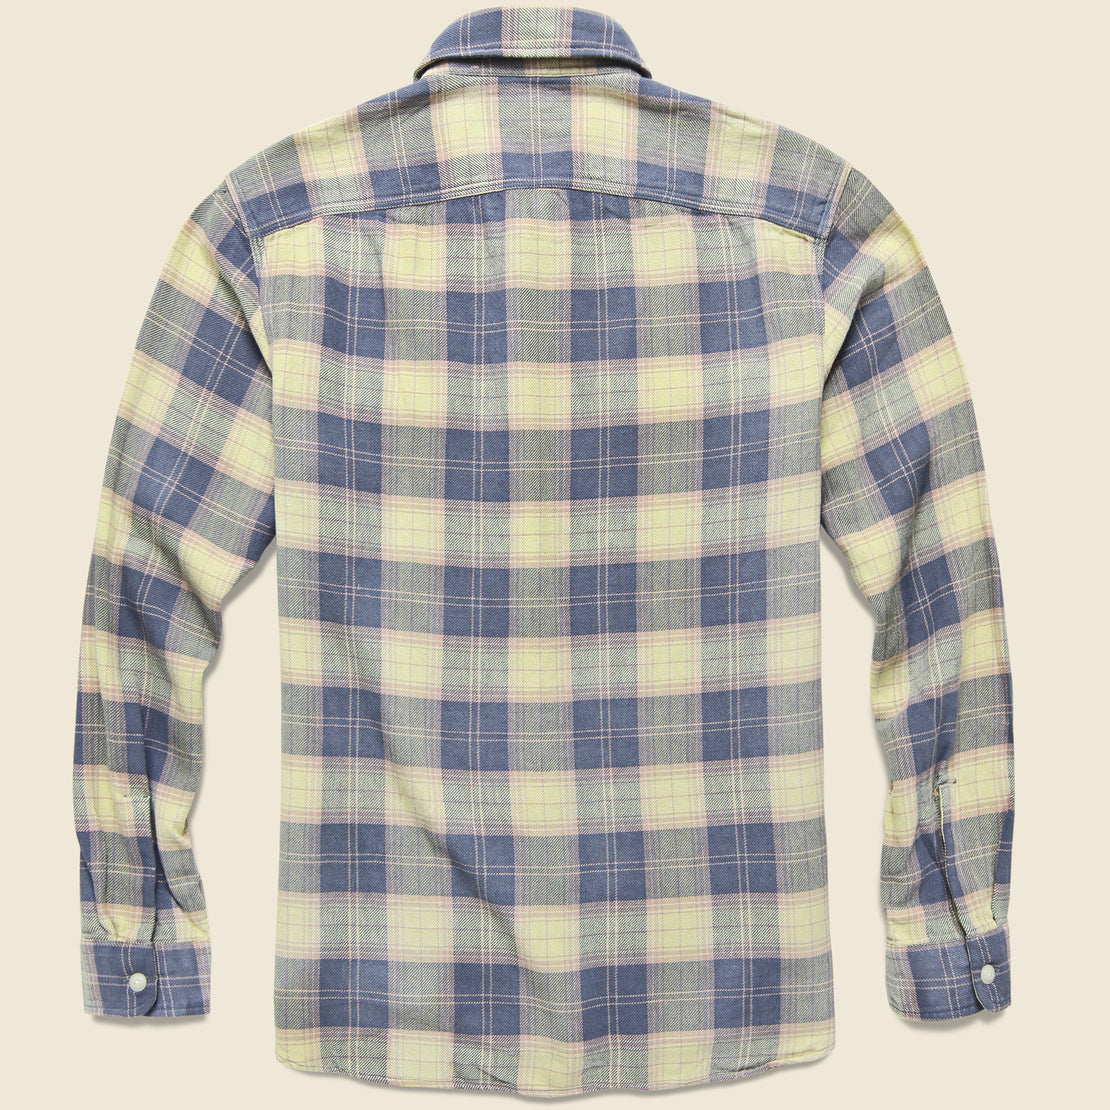 Matlock Plaid Twill Workshirt - Blue/Yellow